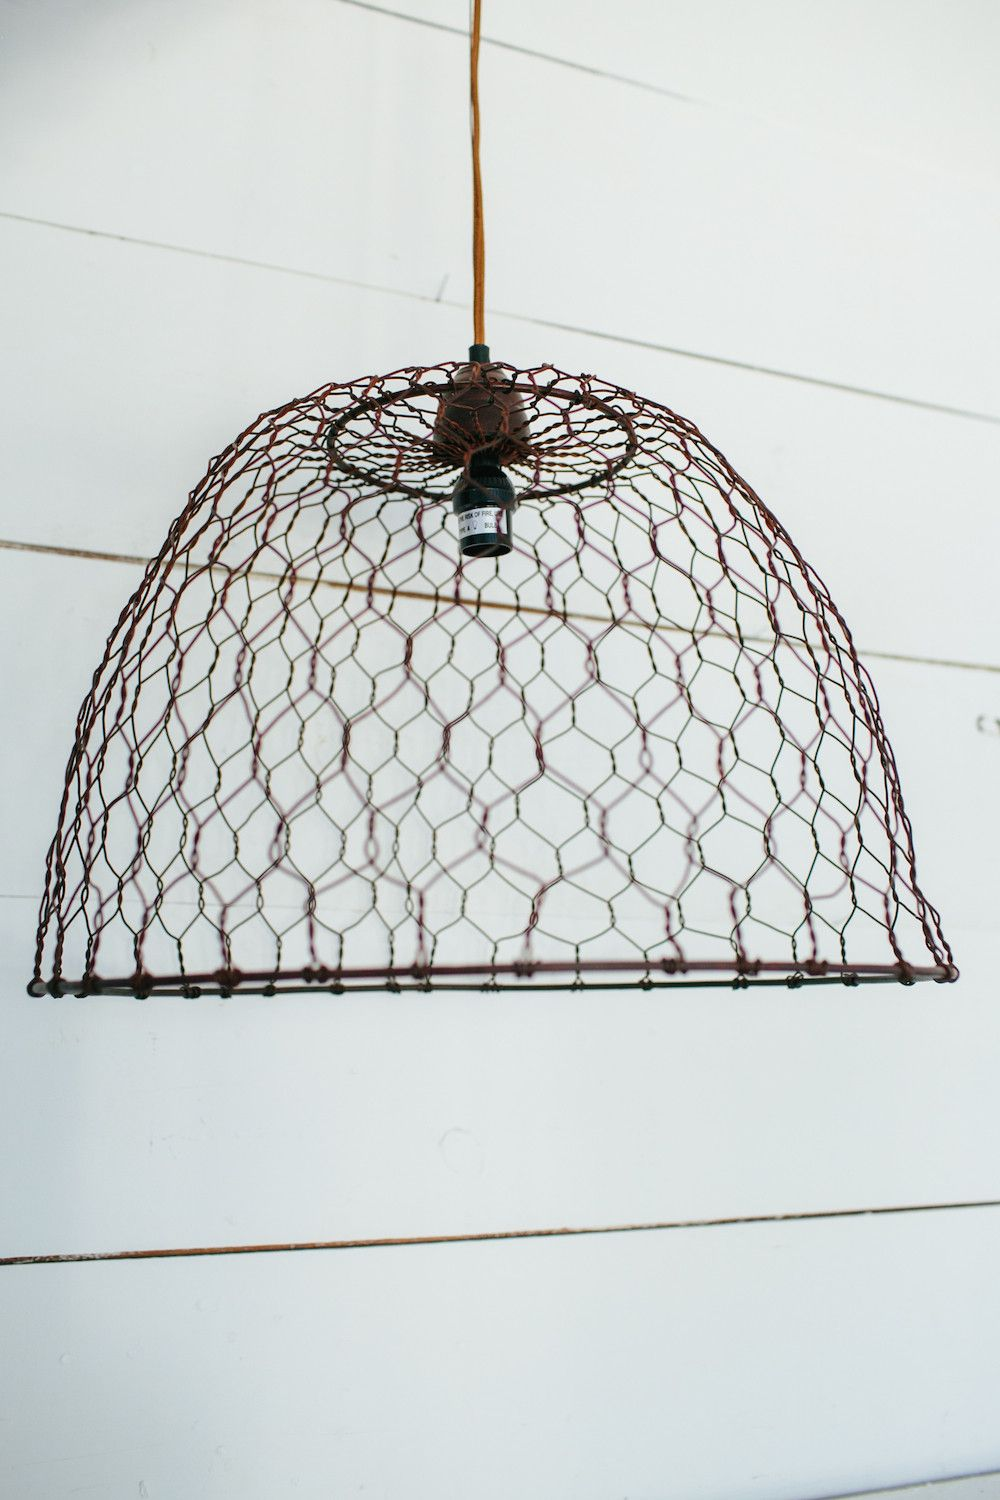 Chicken Wire Pendant Light | The Magnolia Market (HGTV show "|1000|1500|?|74e3c30ad8a2890e031053980fd15e0c|False|UNLIKELY|0.36779576539993286